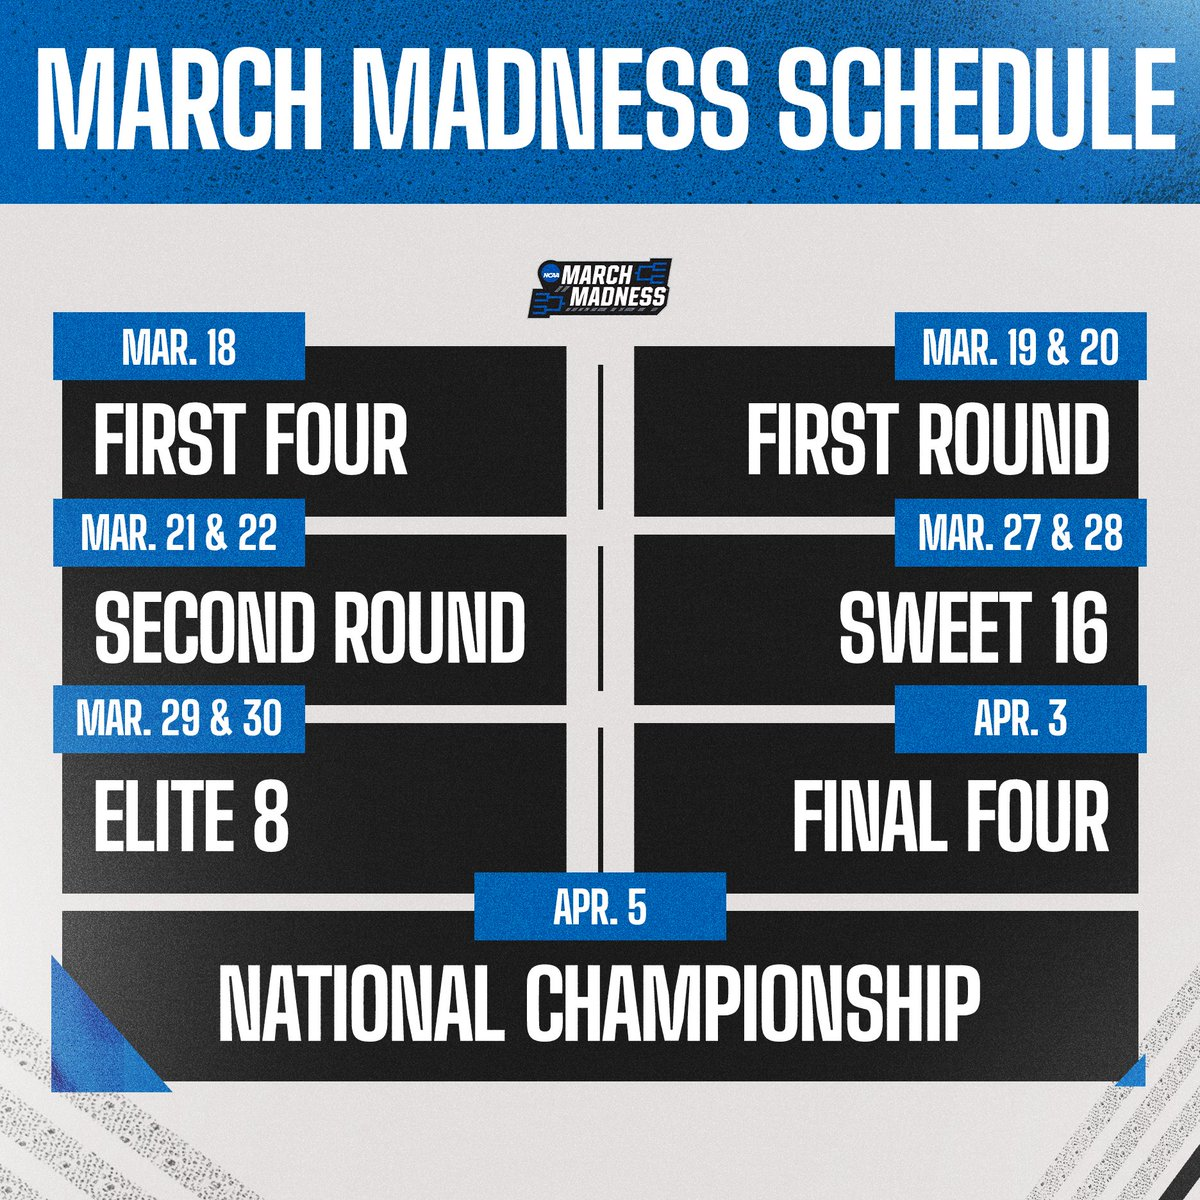 🚨 #MarchMadness Scheduling Update!  🏀 March 18 - First Four 🏀 March 19/20 - First Round 🏀 March 21/22 - Second Round 🏀 March 27/28 - Sweet 16 🏀 March 29/30 - Elite 8 🏀 April 3 - Final Four 🏀 April 5 - National Championship  👉